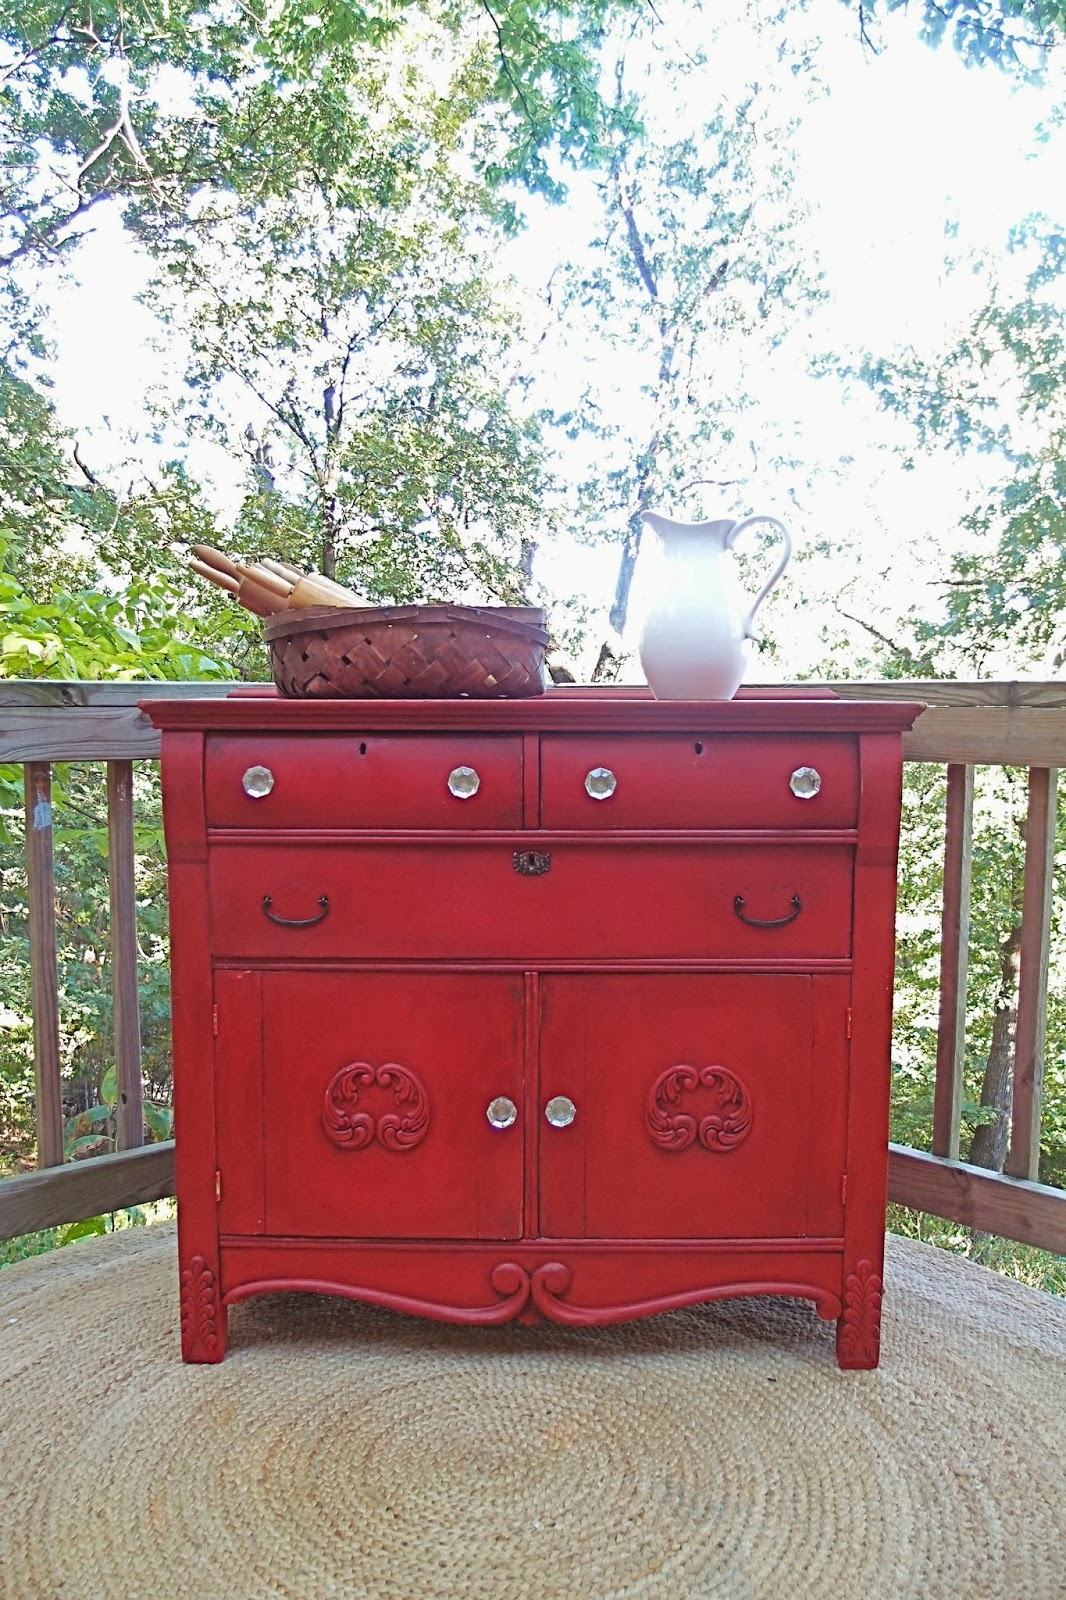 Shades of Blue Interiors: A Red Country Cabinet and How to Repair